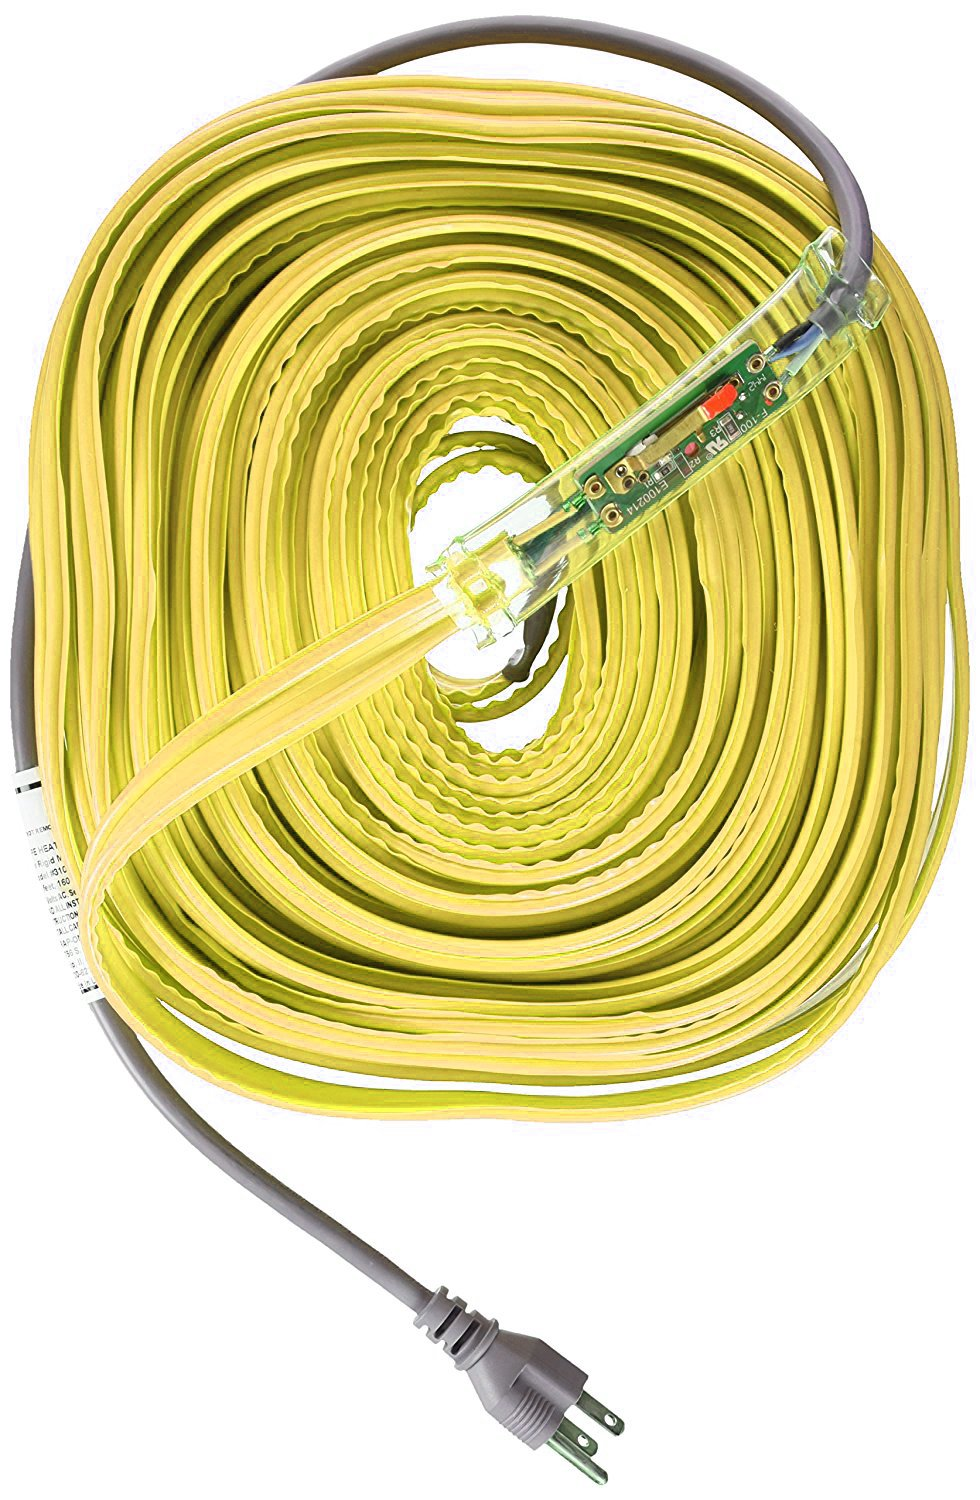 Wrap On Pipe Heating Cable 60 Feet 120 Volt Built In Thermostat Rite Temp Wiring Diagram 7 Wire Low Wattage 31060 Water Heat